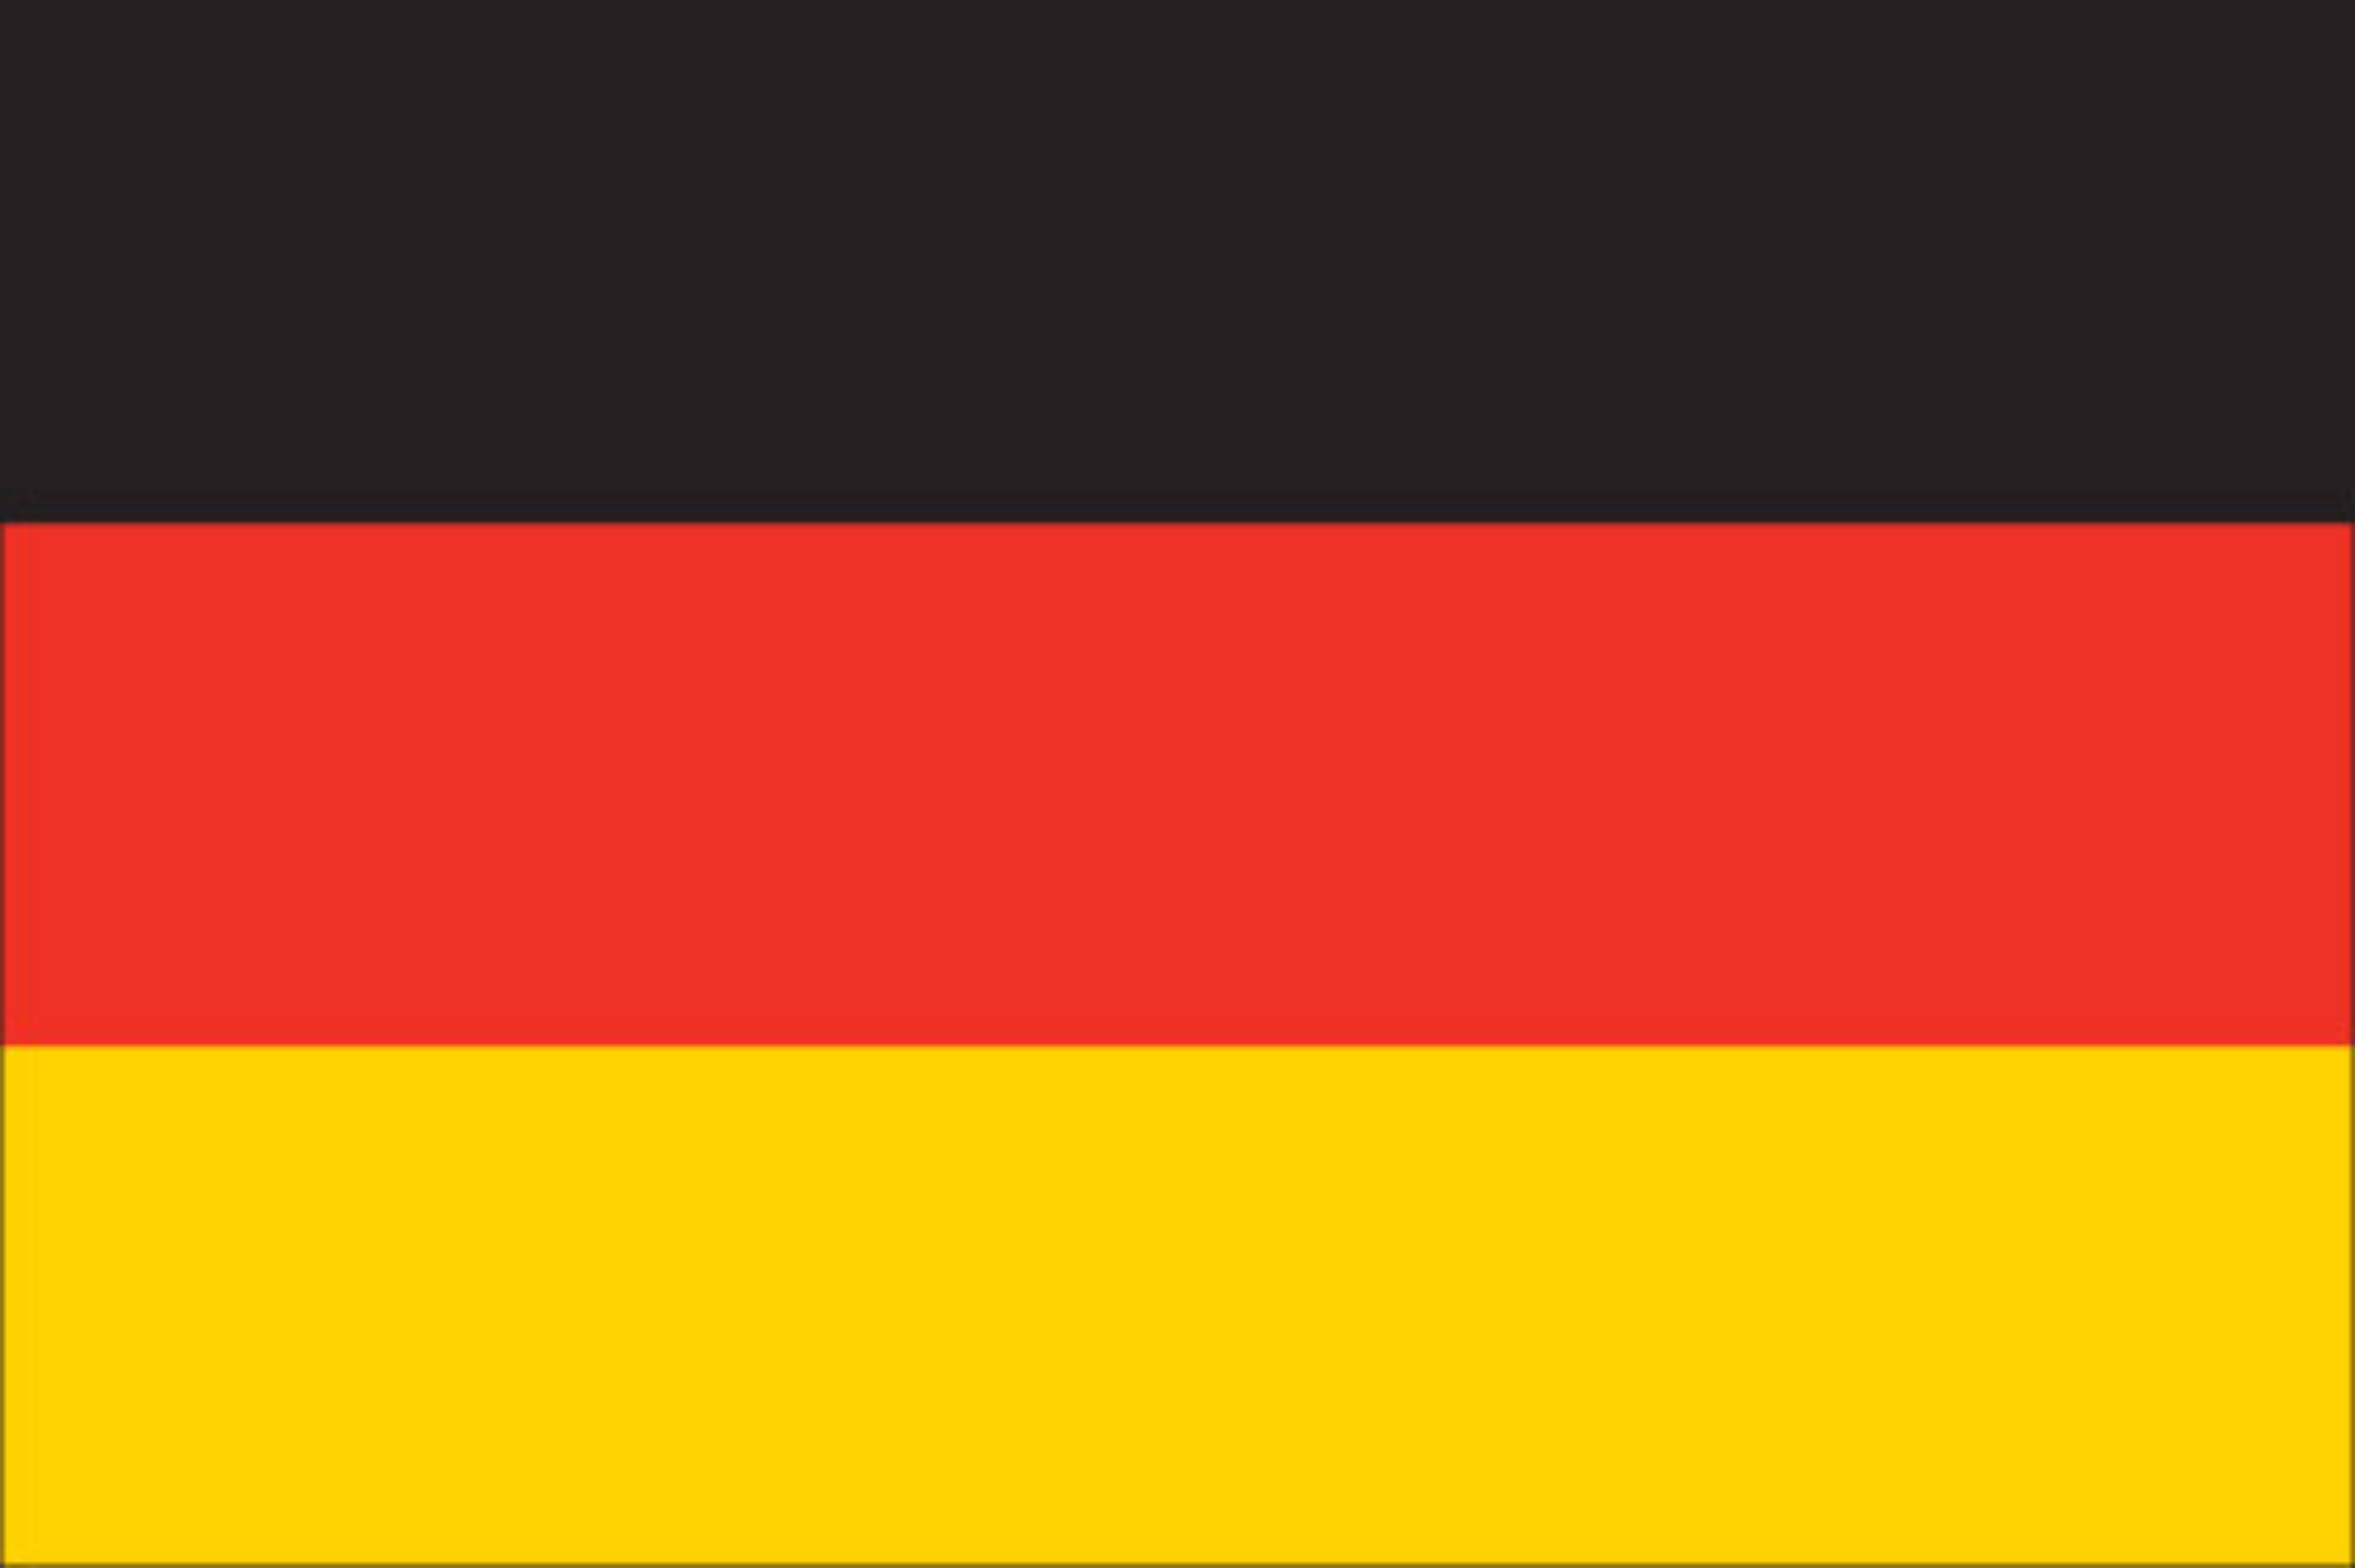 The National Flag of Germany features three equal horizontal bands of black (top), red, and gold.